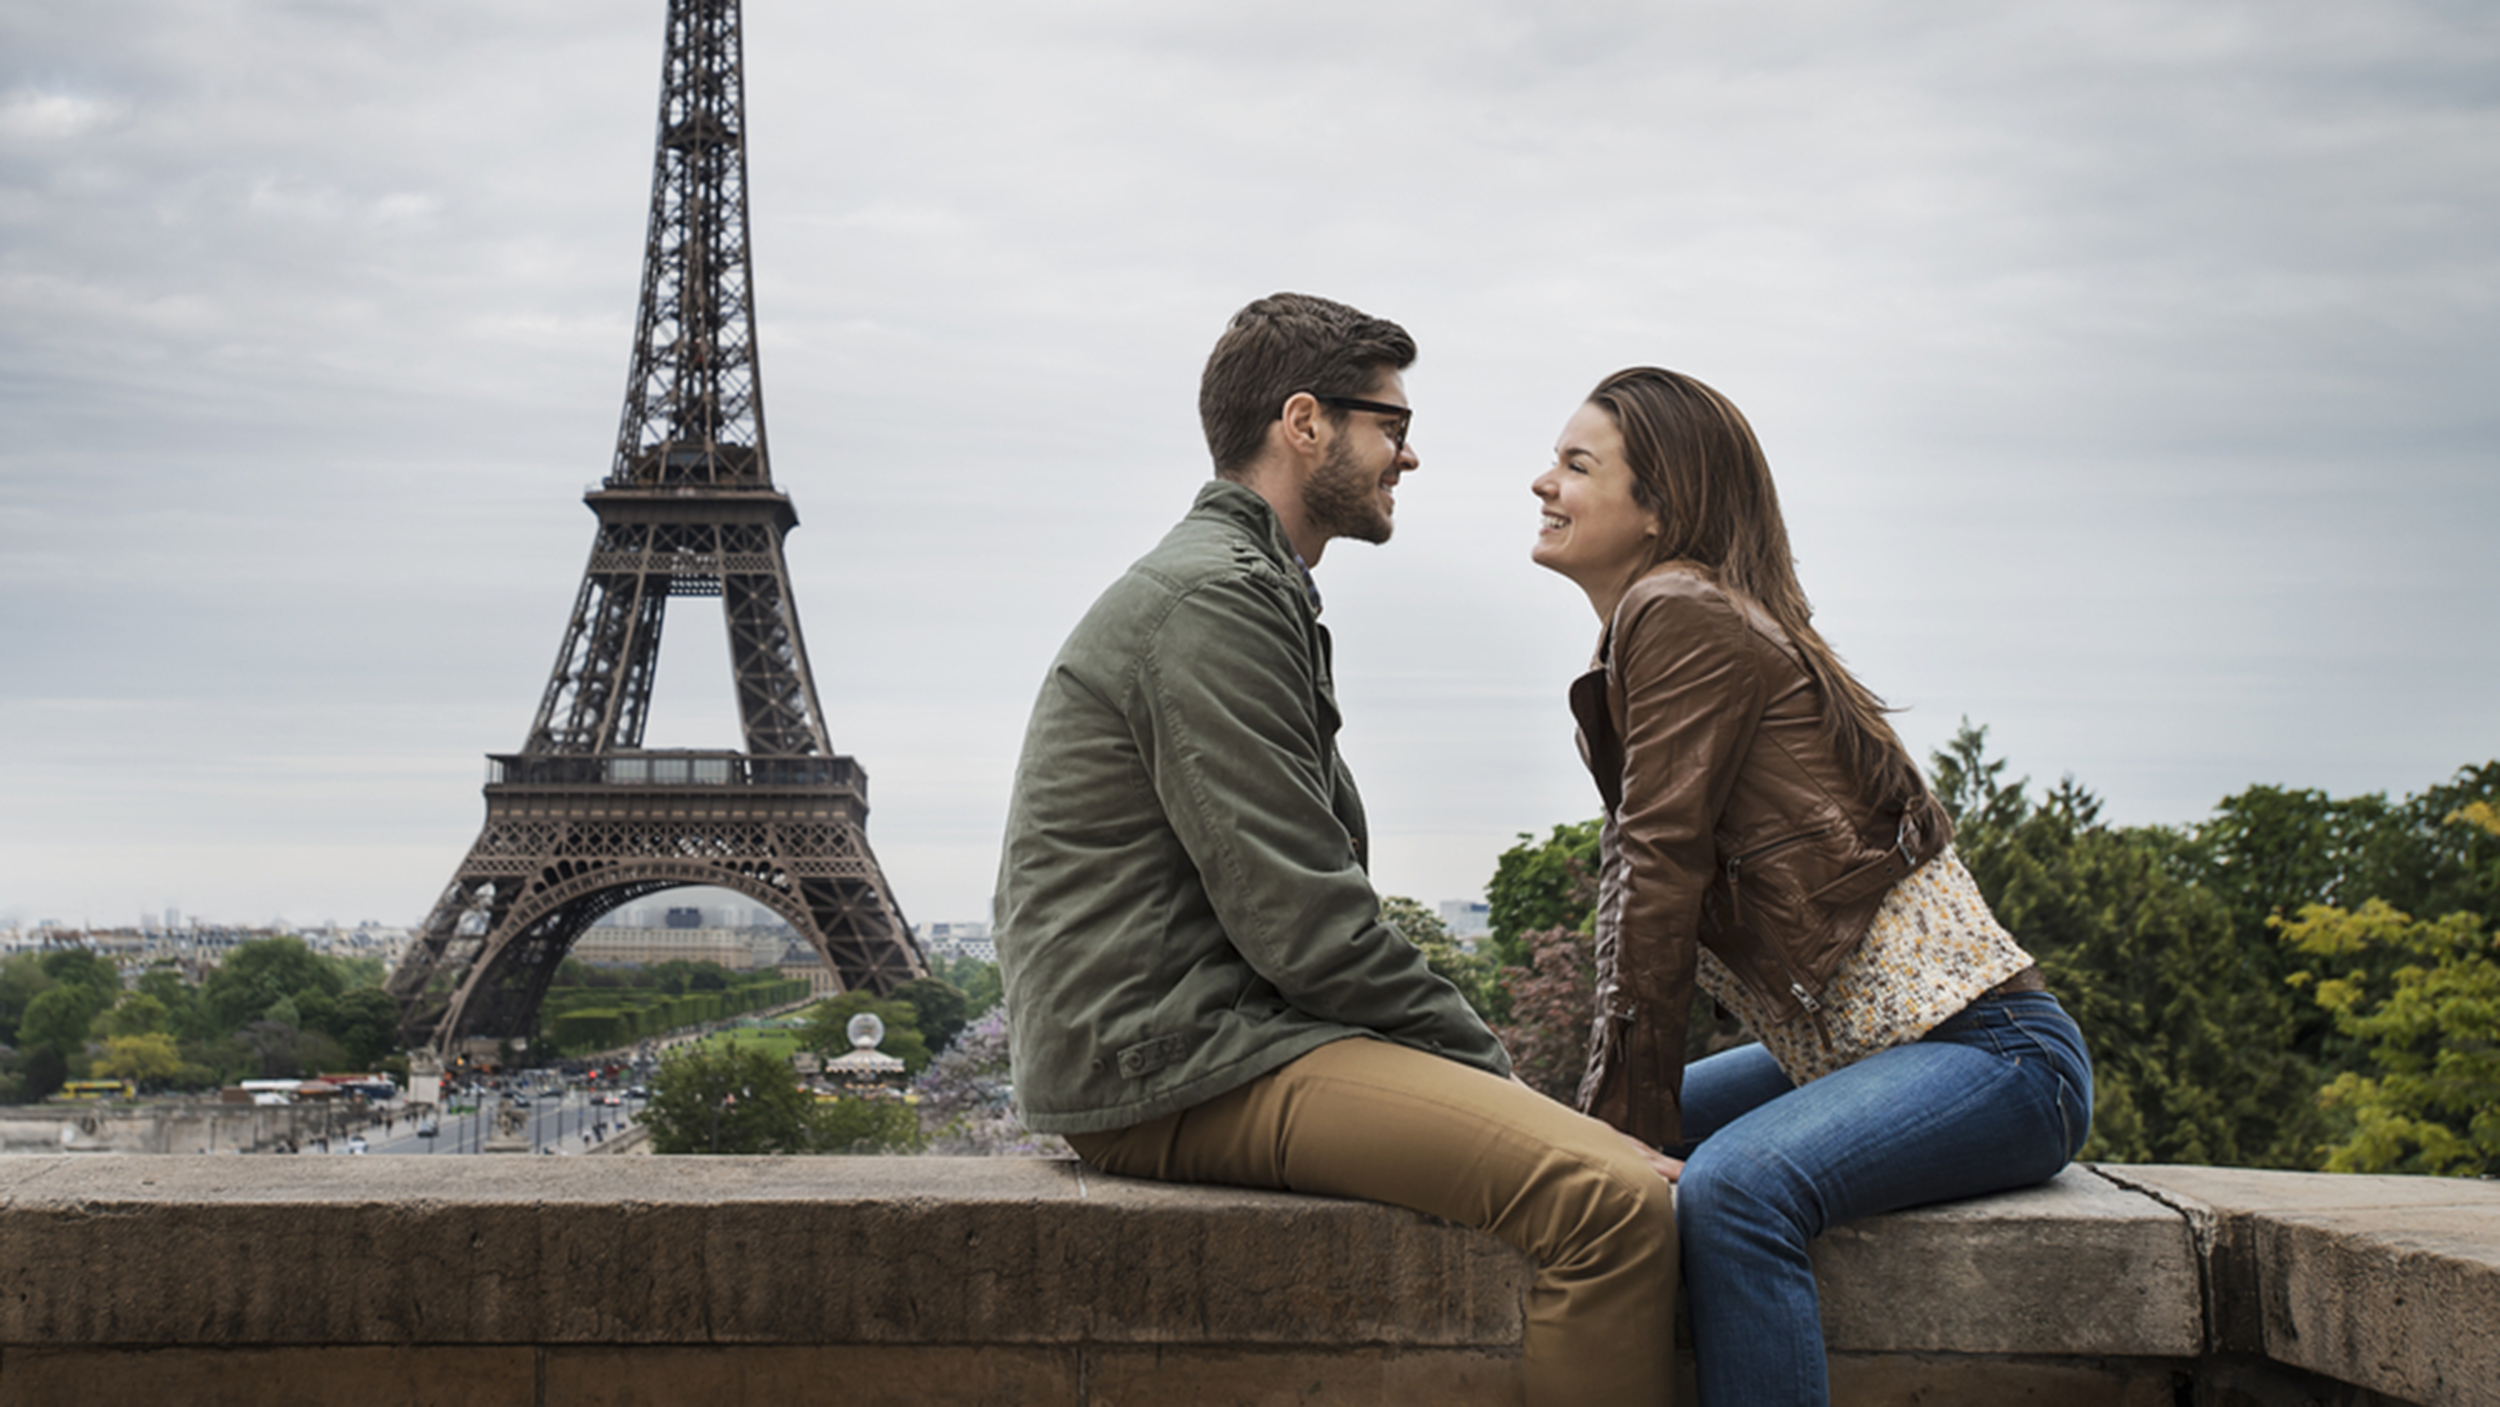 Americans pick paris as the world 39 s most romantic city in expedia travel study - Couple best images ...